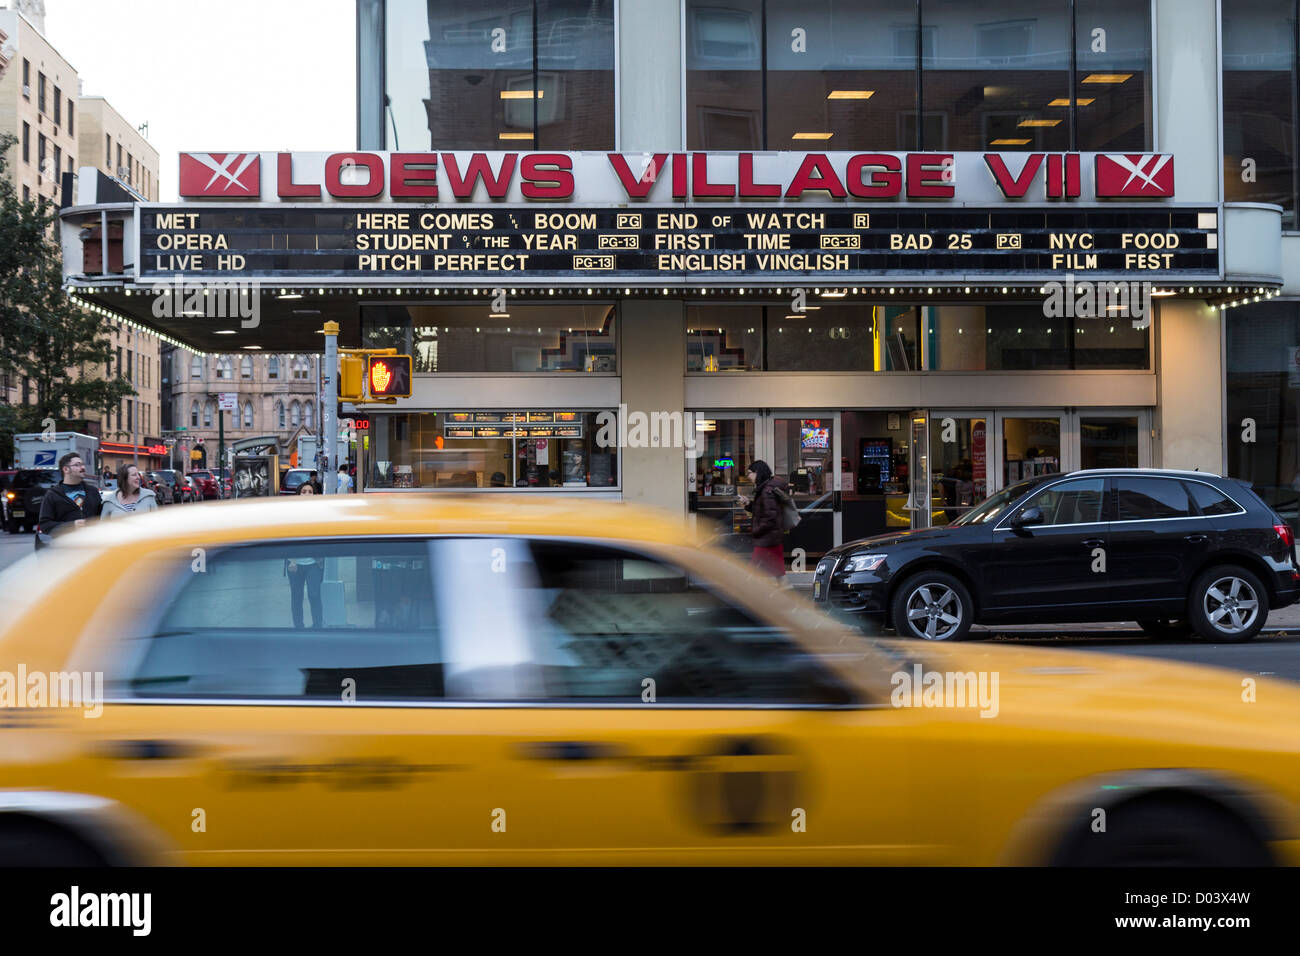 A yellow taxi passing in front the AMC Loews Village 7 theater in New York - Stock Image